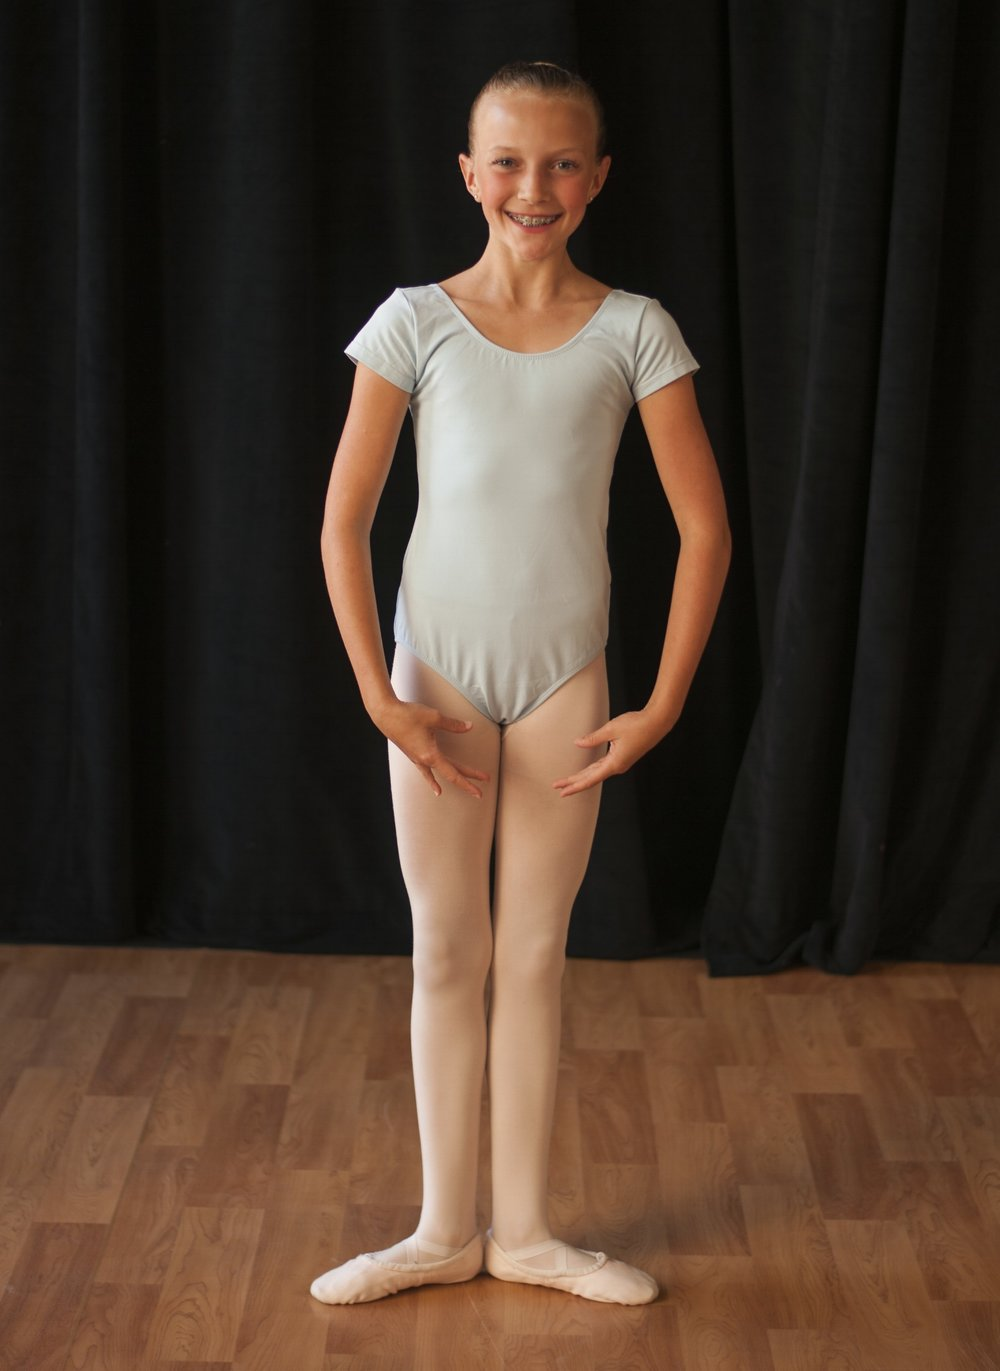 Ballet basics -  Light blue short sleeve leotardPink footed or convertible tights (no specific brand required)Pink ballet shoesHair in a bunSkirt, sweater and leg warmers are optional but at the discretion of the teacher